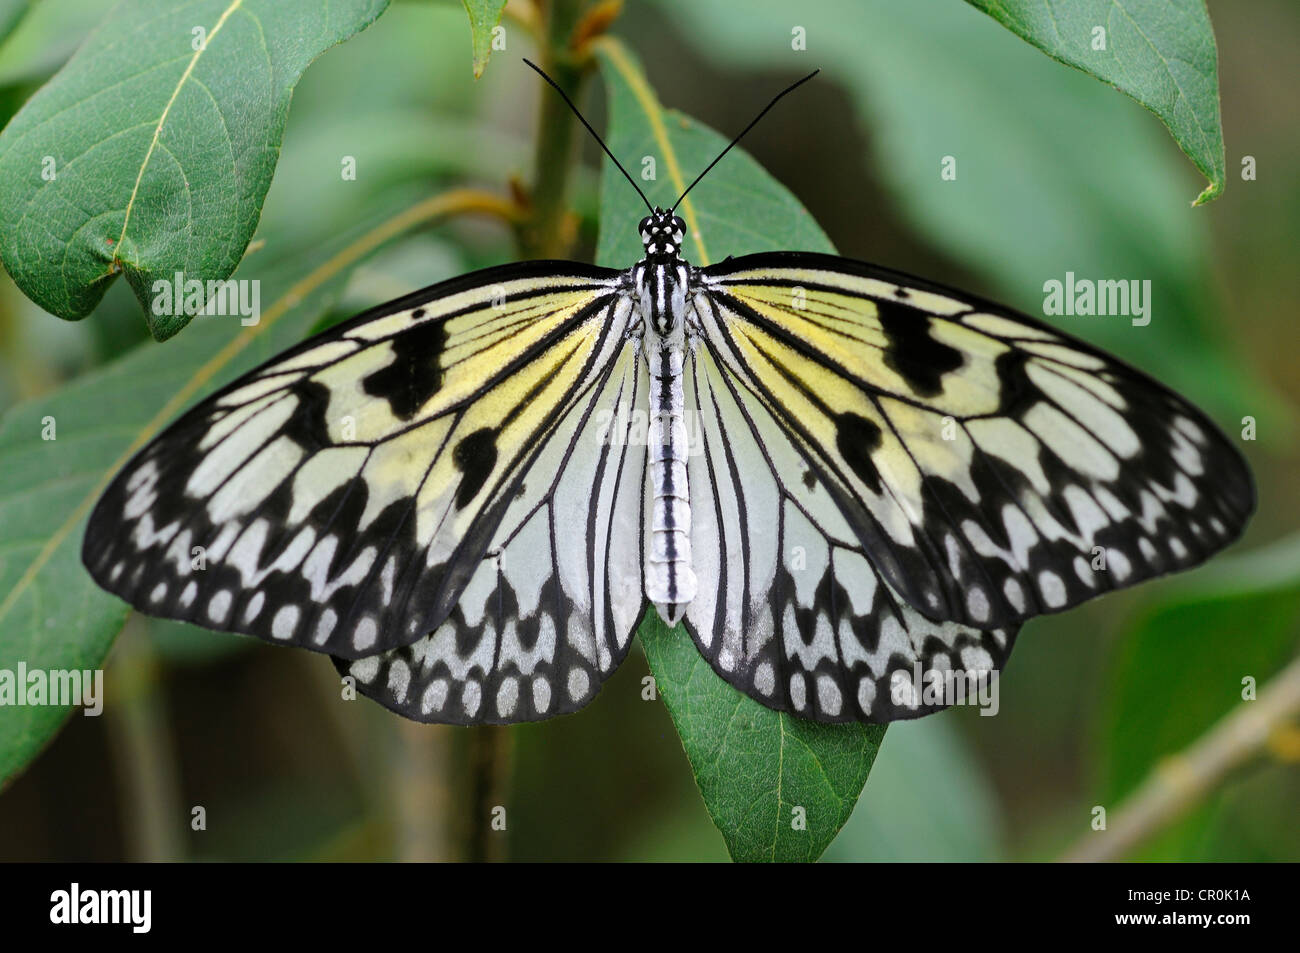 Paper Kite or Large Tree Nymph (Idea leuconoe), tropical butterfly, Asia - Stock Image